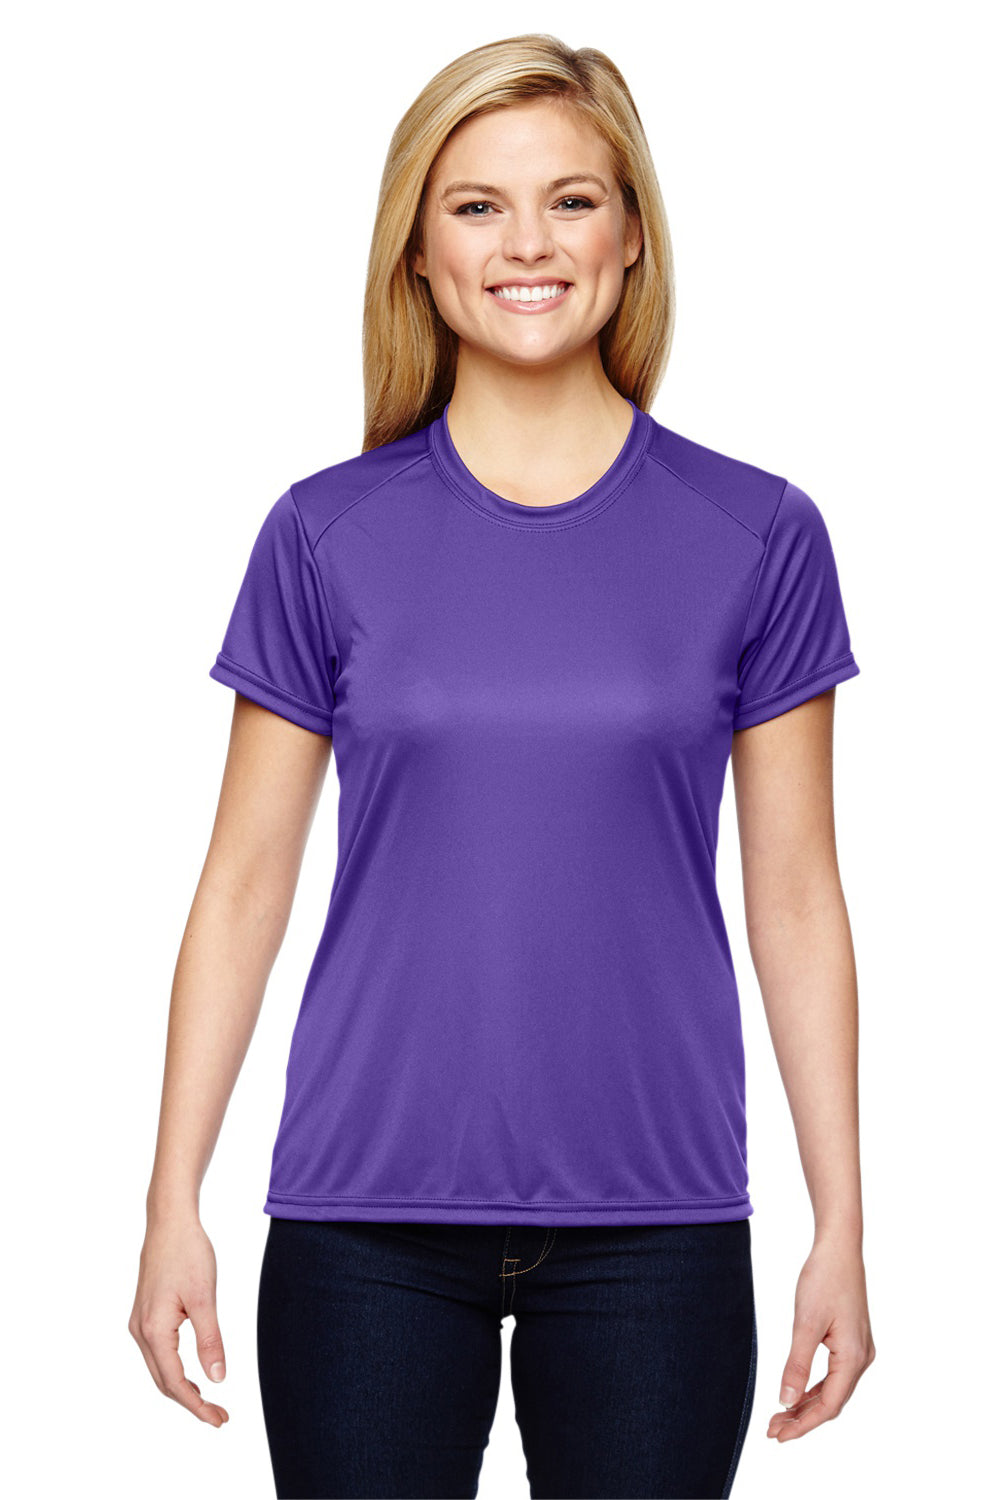 A4 NW3201 Womens Cooling Performance Moisture Wicking Short Sleeve Crewneck T-Shirt Purple Front